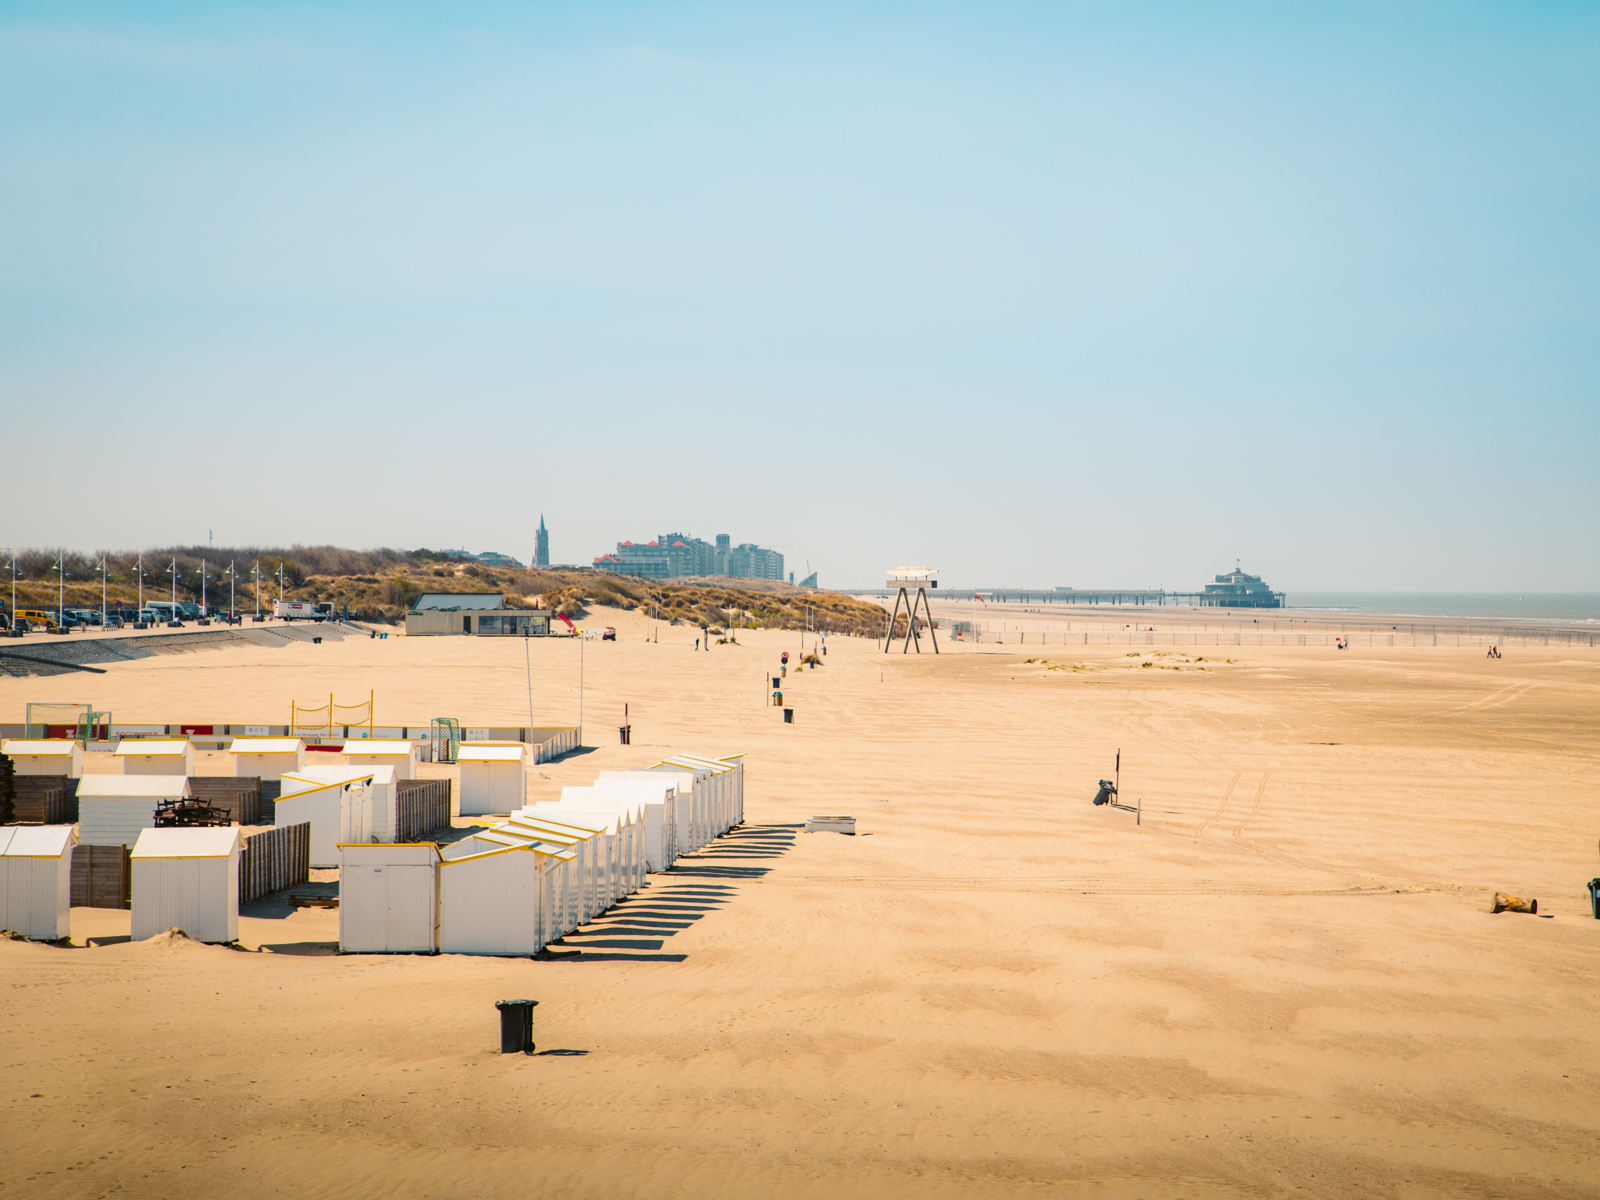 The beautiful beach of Zeebrugge